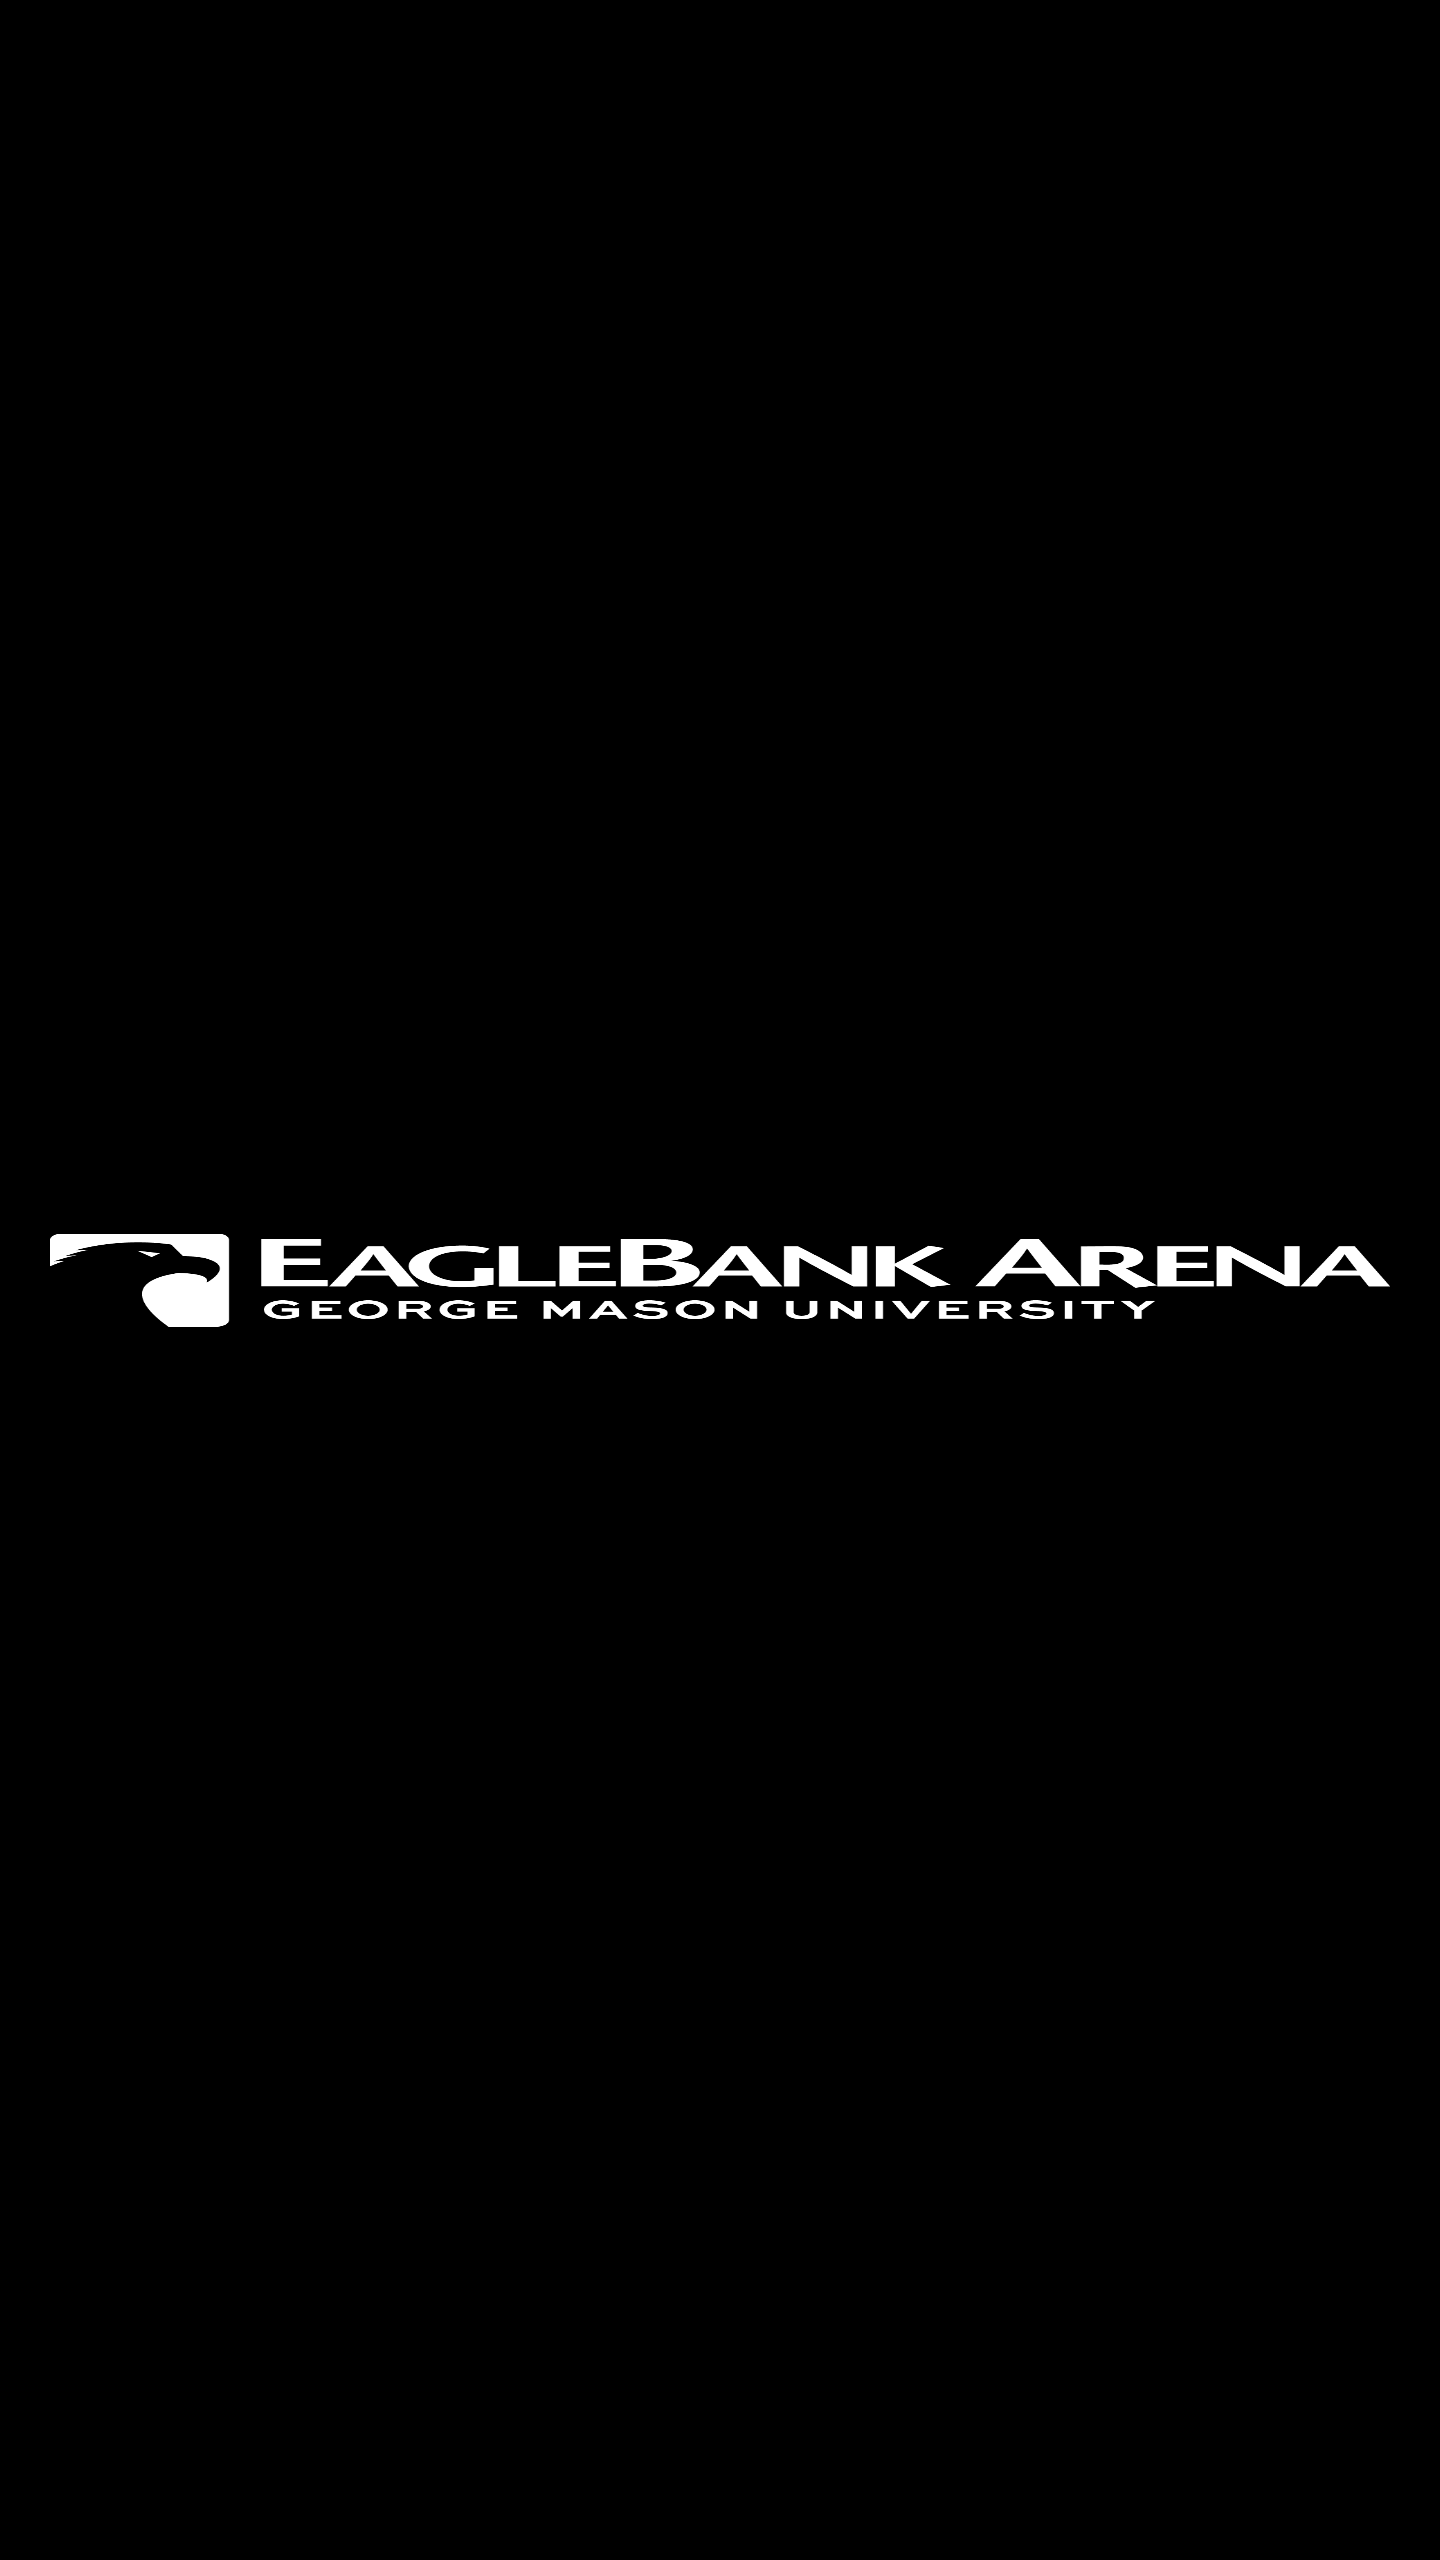 Frequently Asked Questions | eaglebankarena